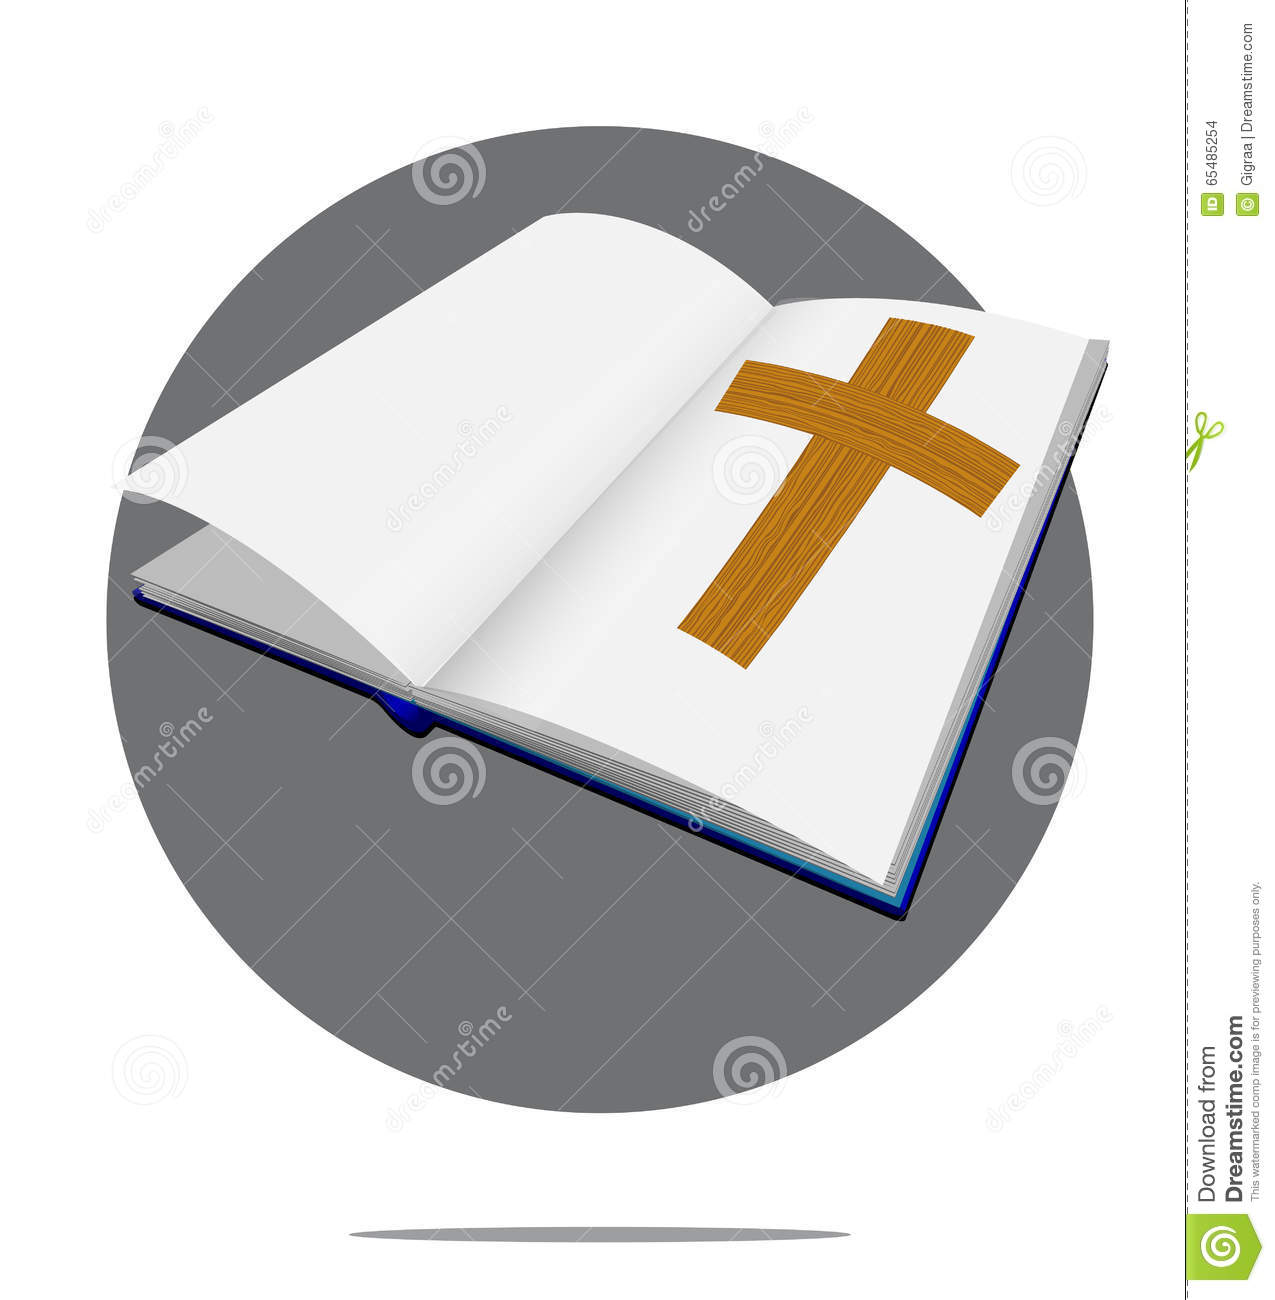 Illustration Of Bible With Cross In Circle Background Stock.